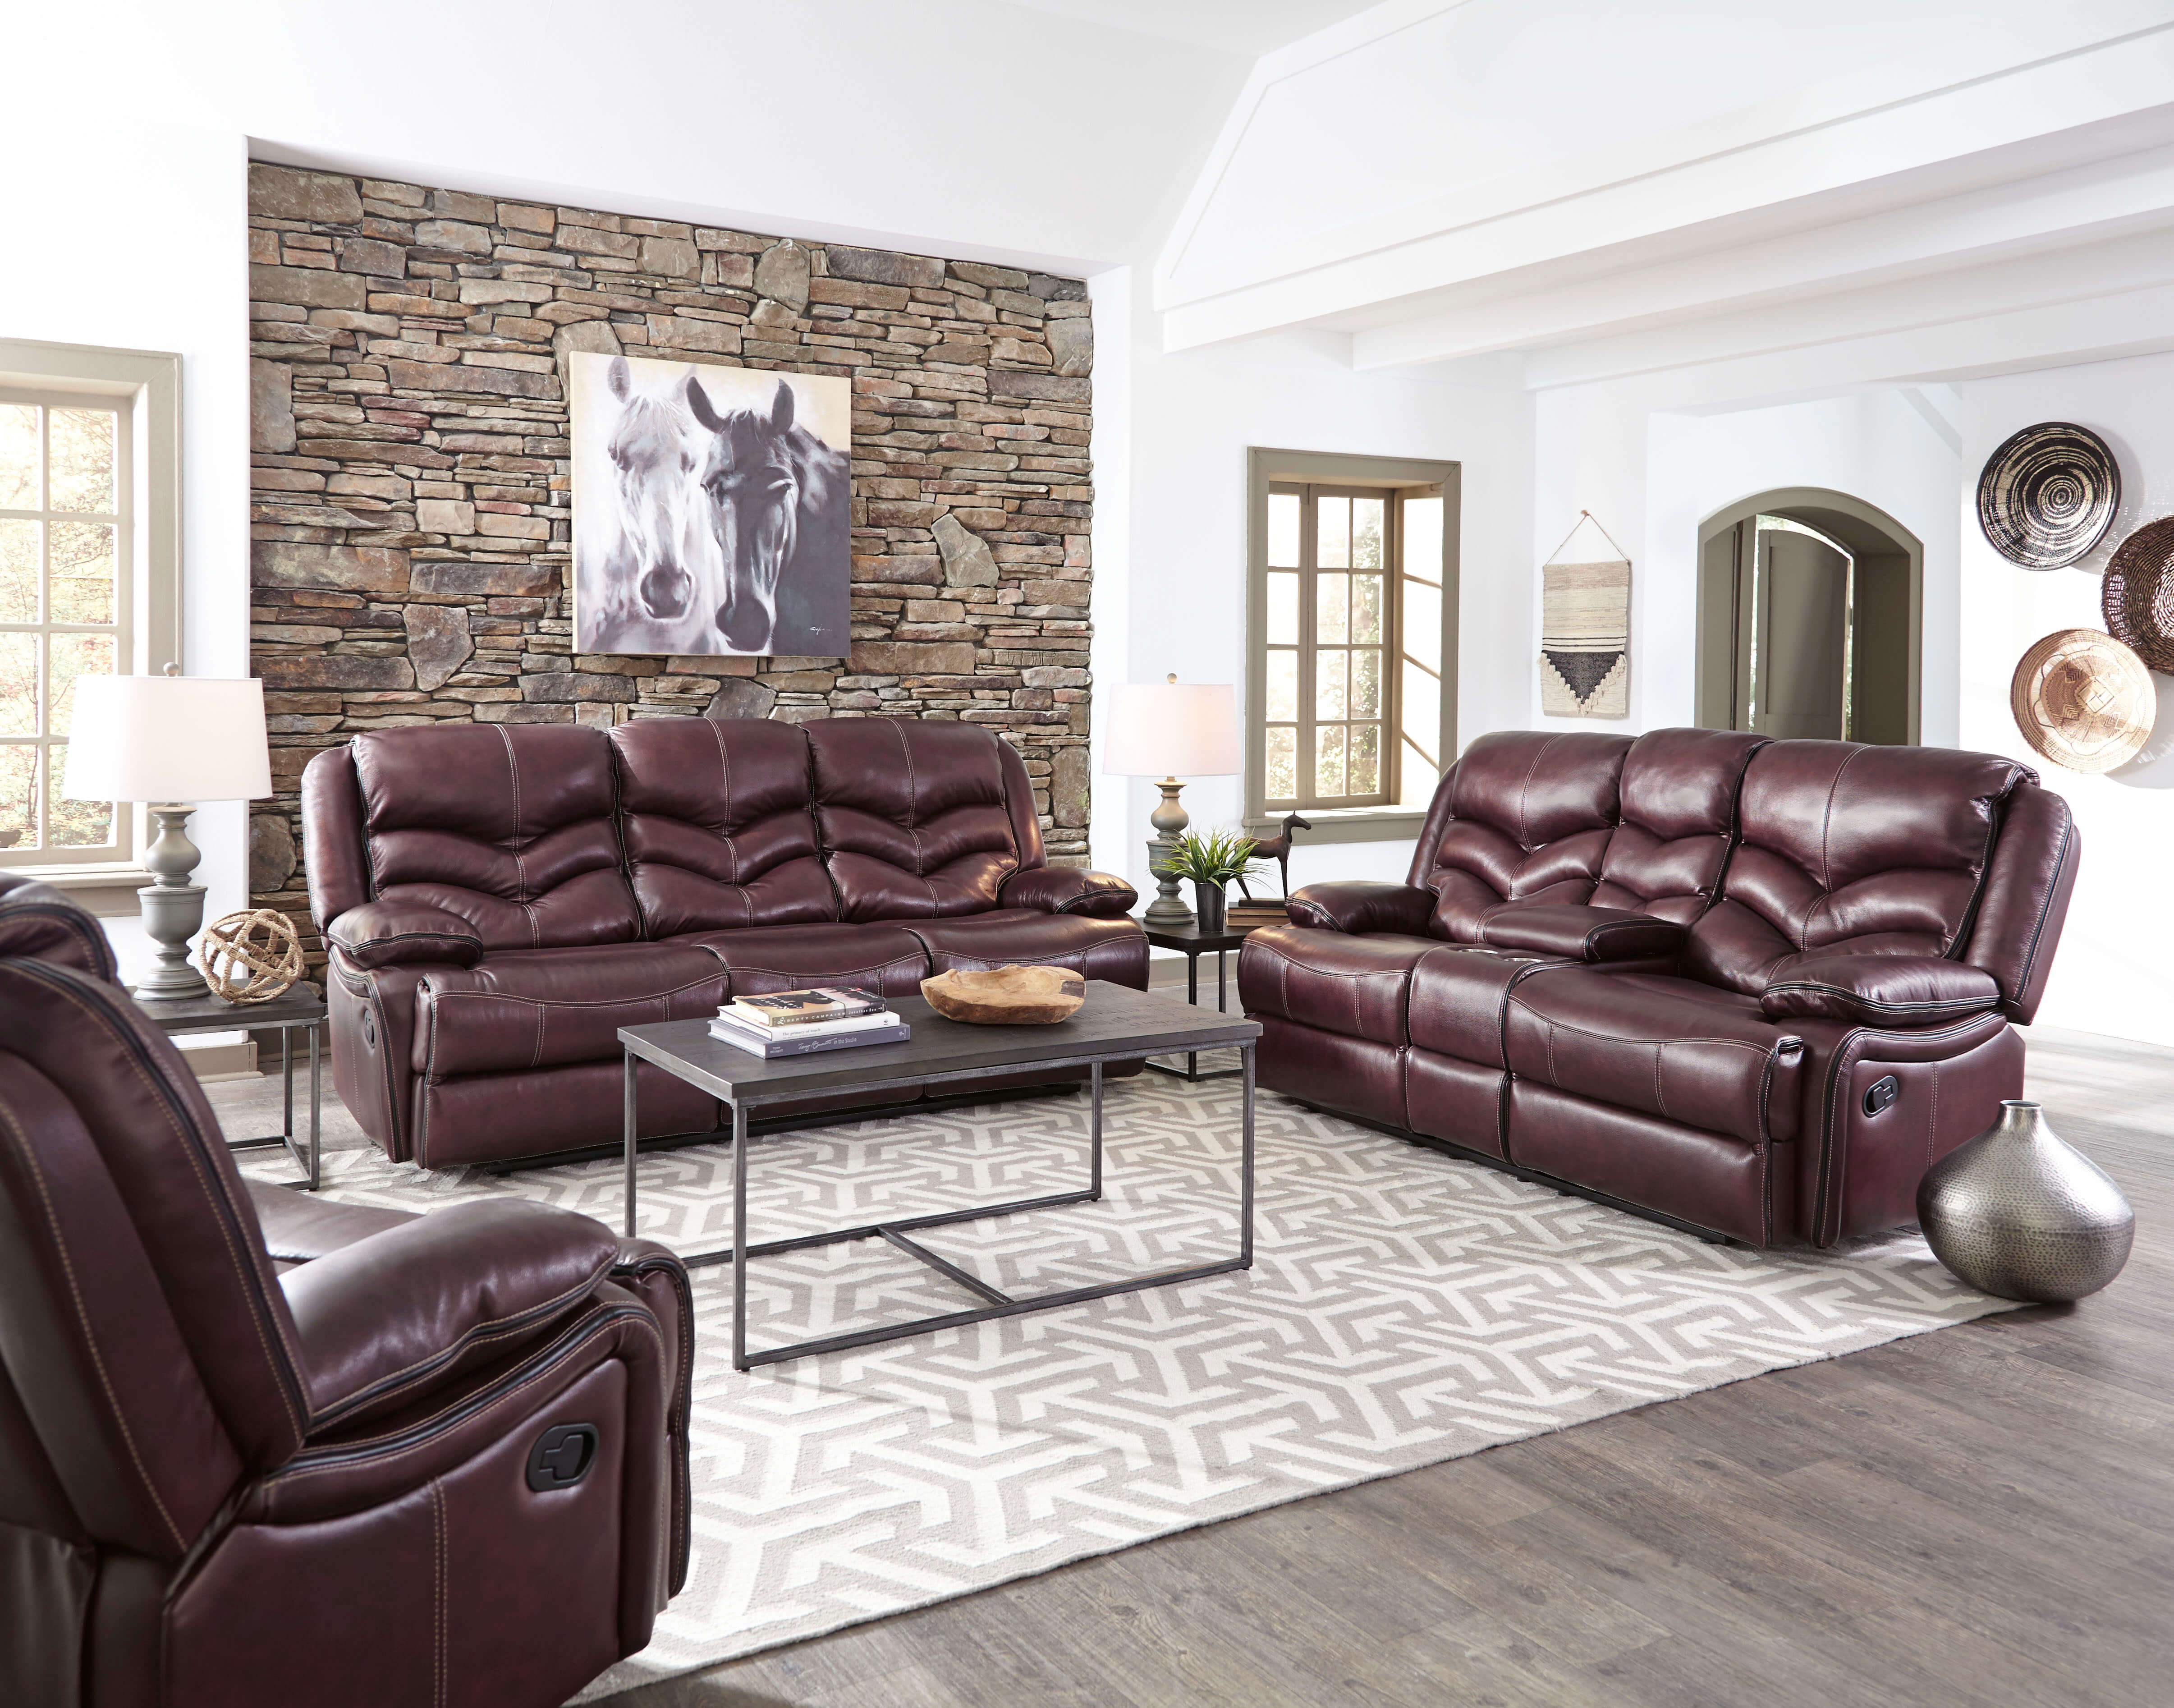 Strange Denali Leather Reclining Sofa And Loveseat By Standard Furniture Discontinued Bralicious Painted Fabric Chair Ideas Braliciousco